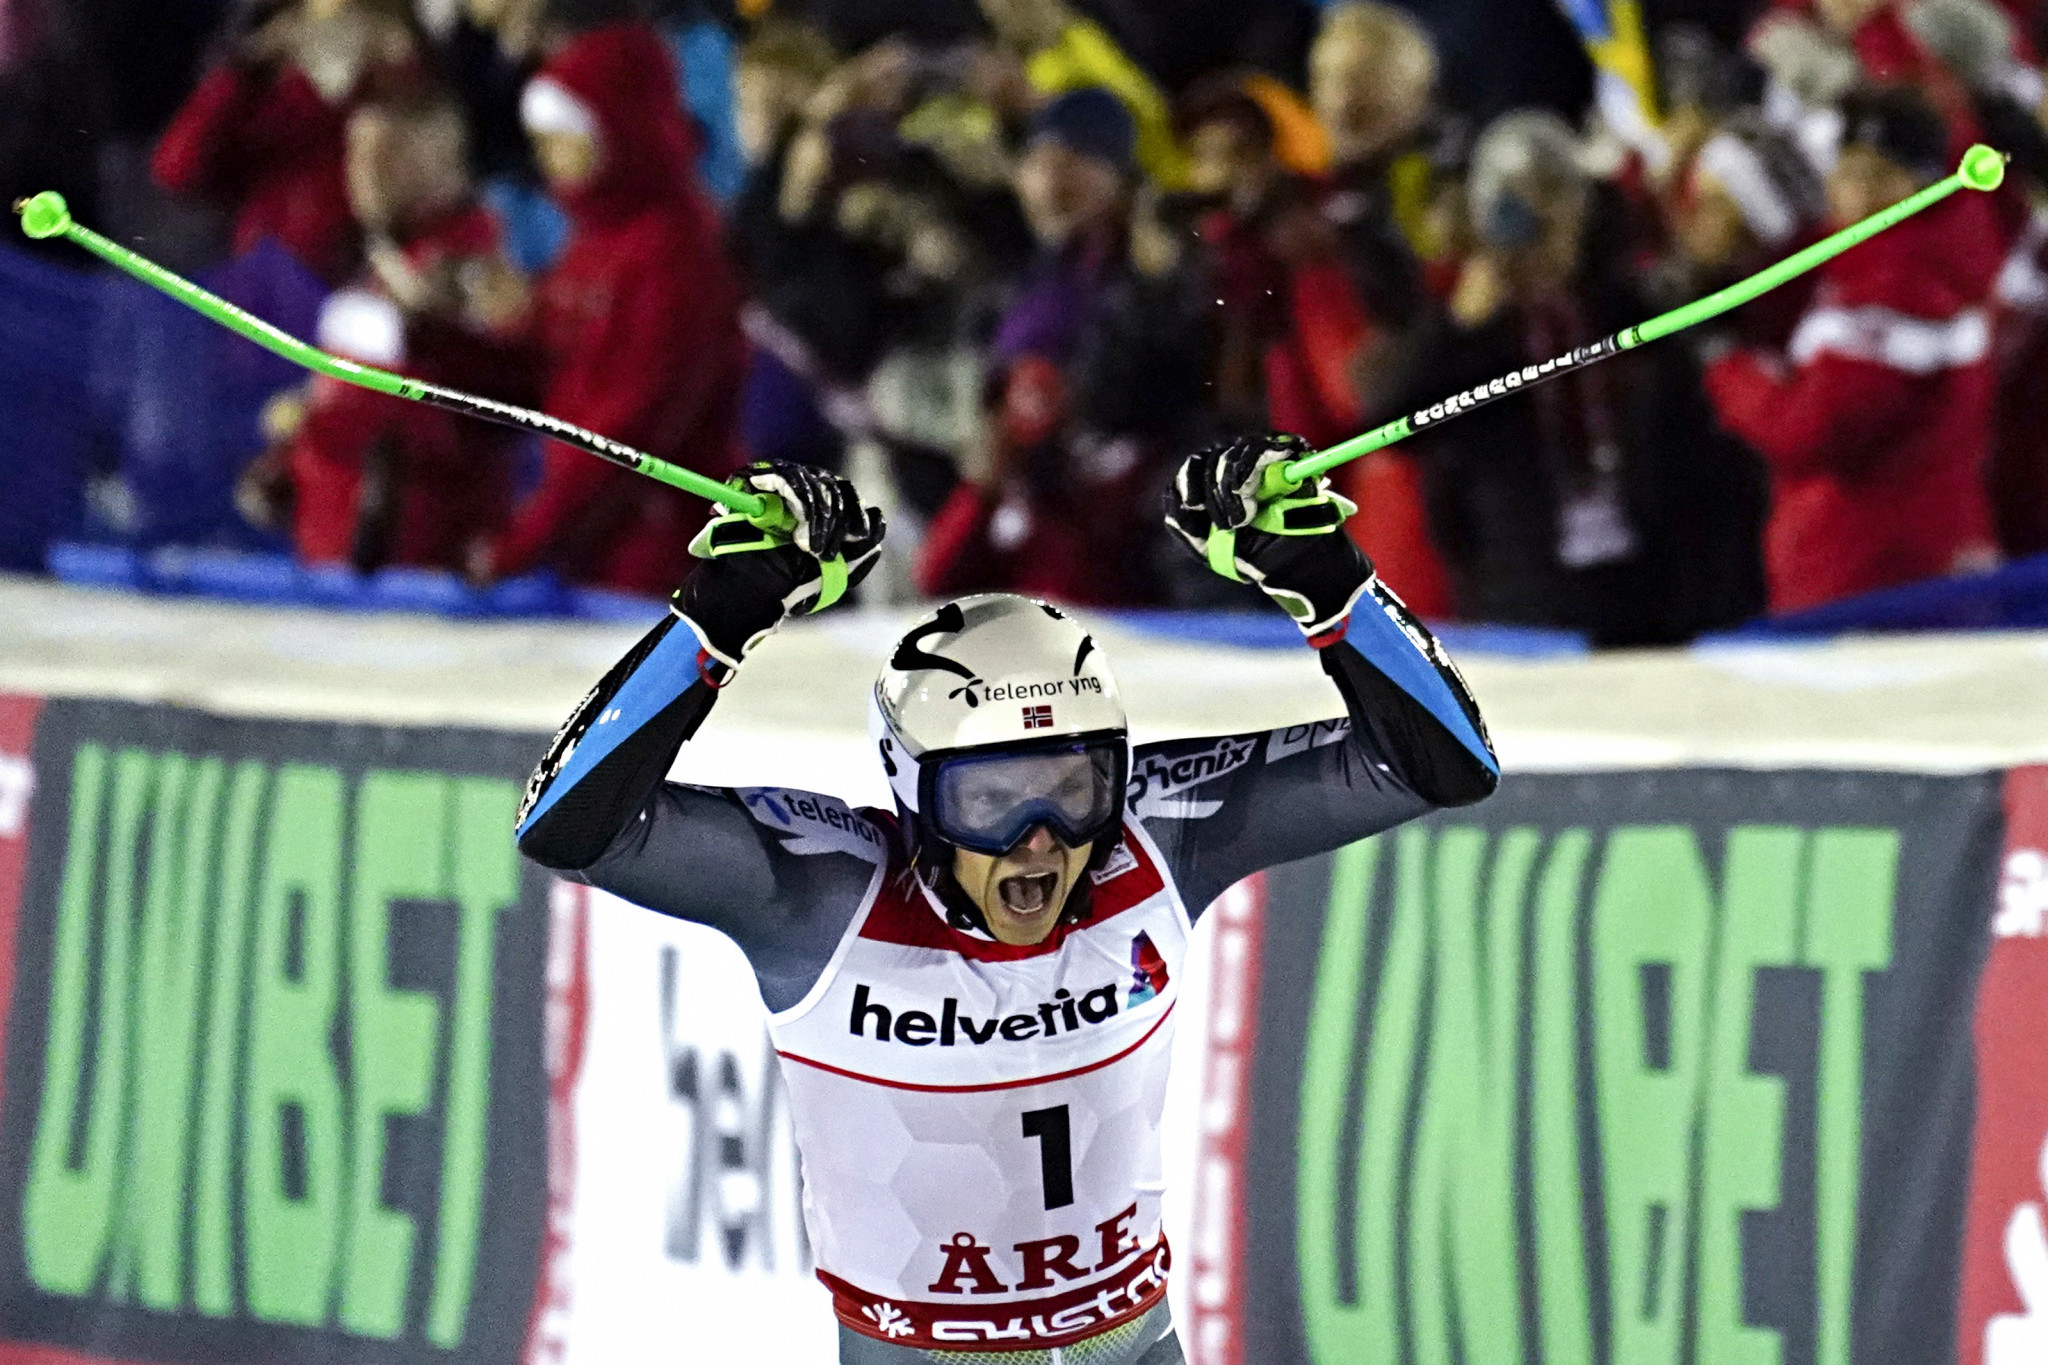 Norway's Henrik Kristoffersen produced a sensational second run to claim the men's giant slalom gold medal at the FIS Alpine World Ski Championships in Åre in Sweden ©Getty Images